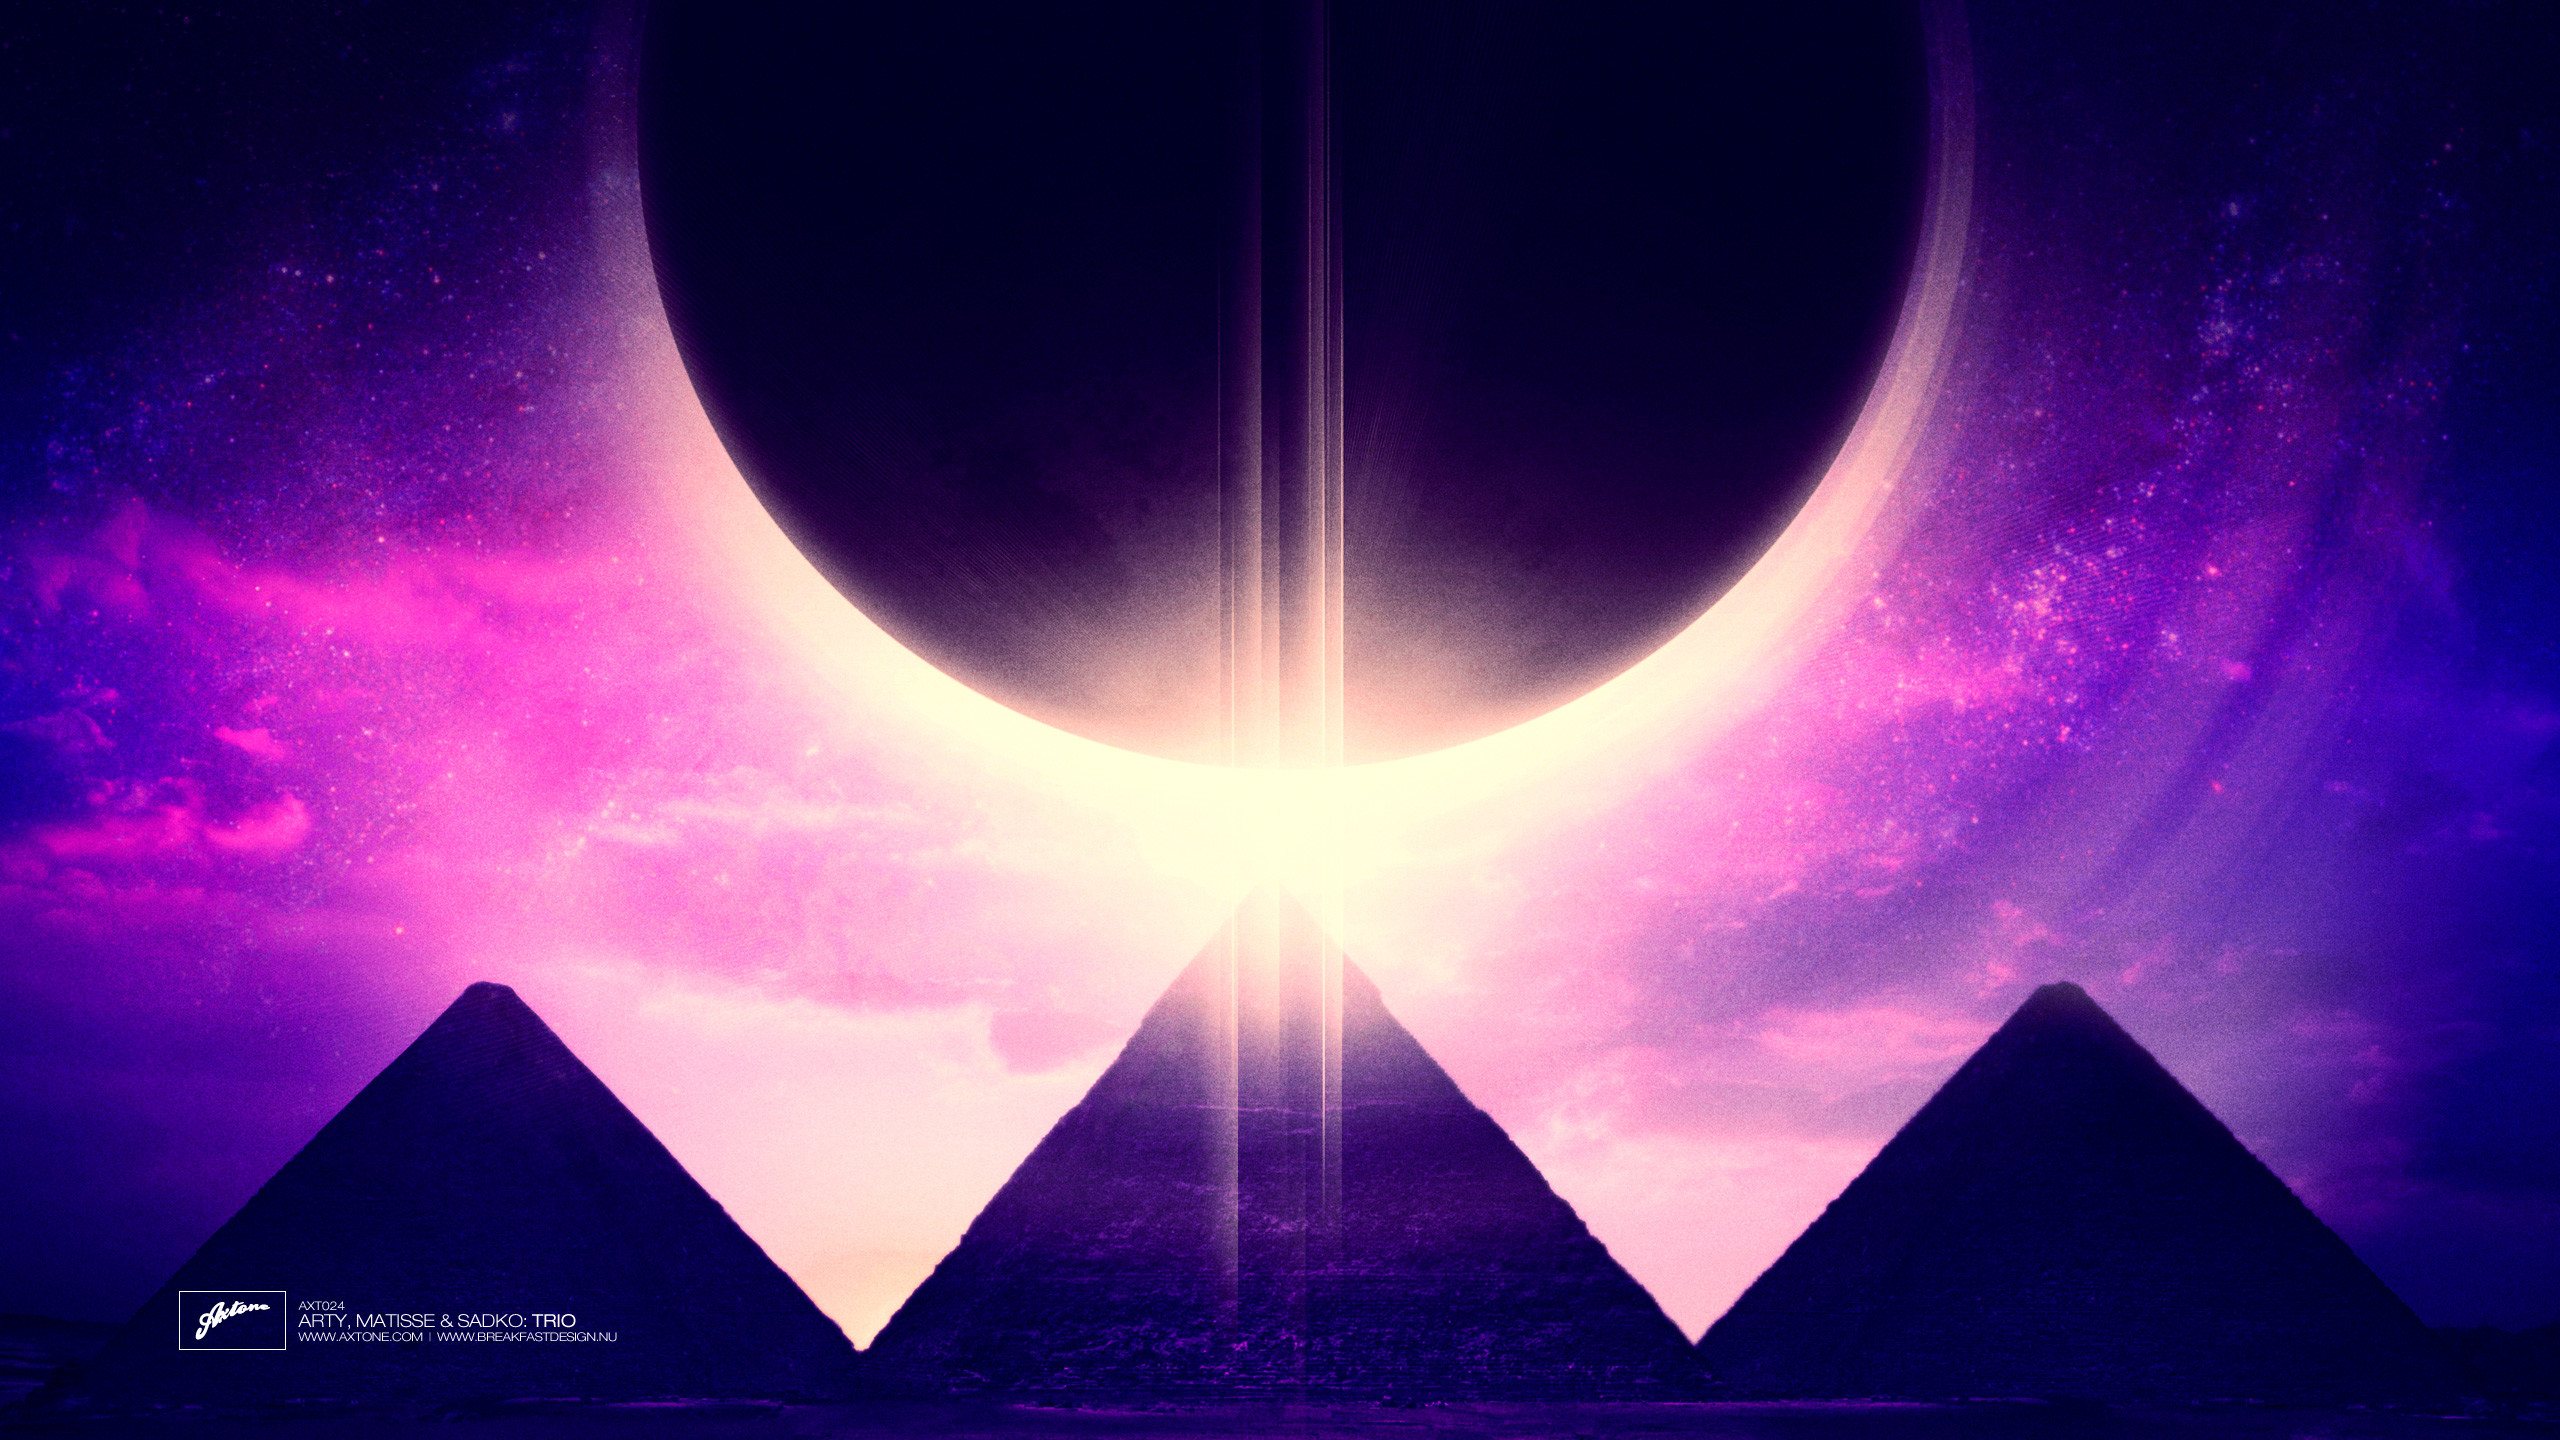 Axwell ingrosso wallpapers 78 images - Wallpaper stills ...